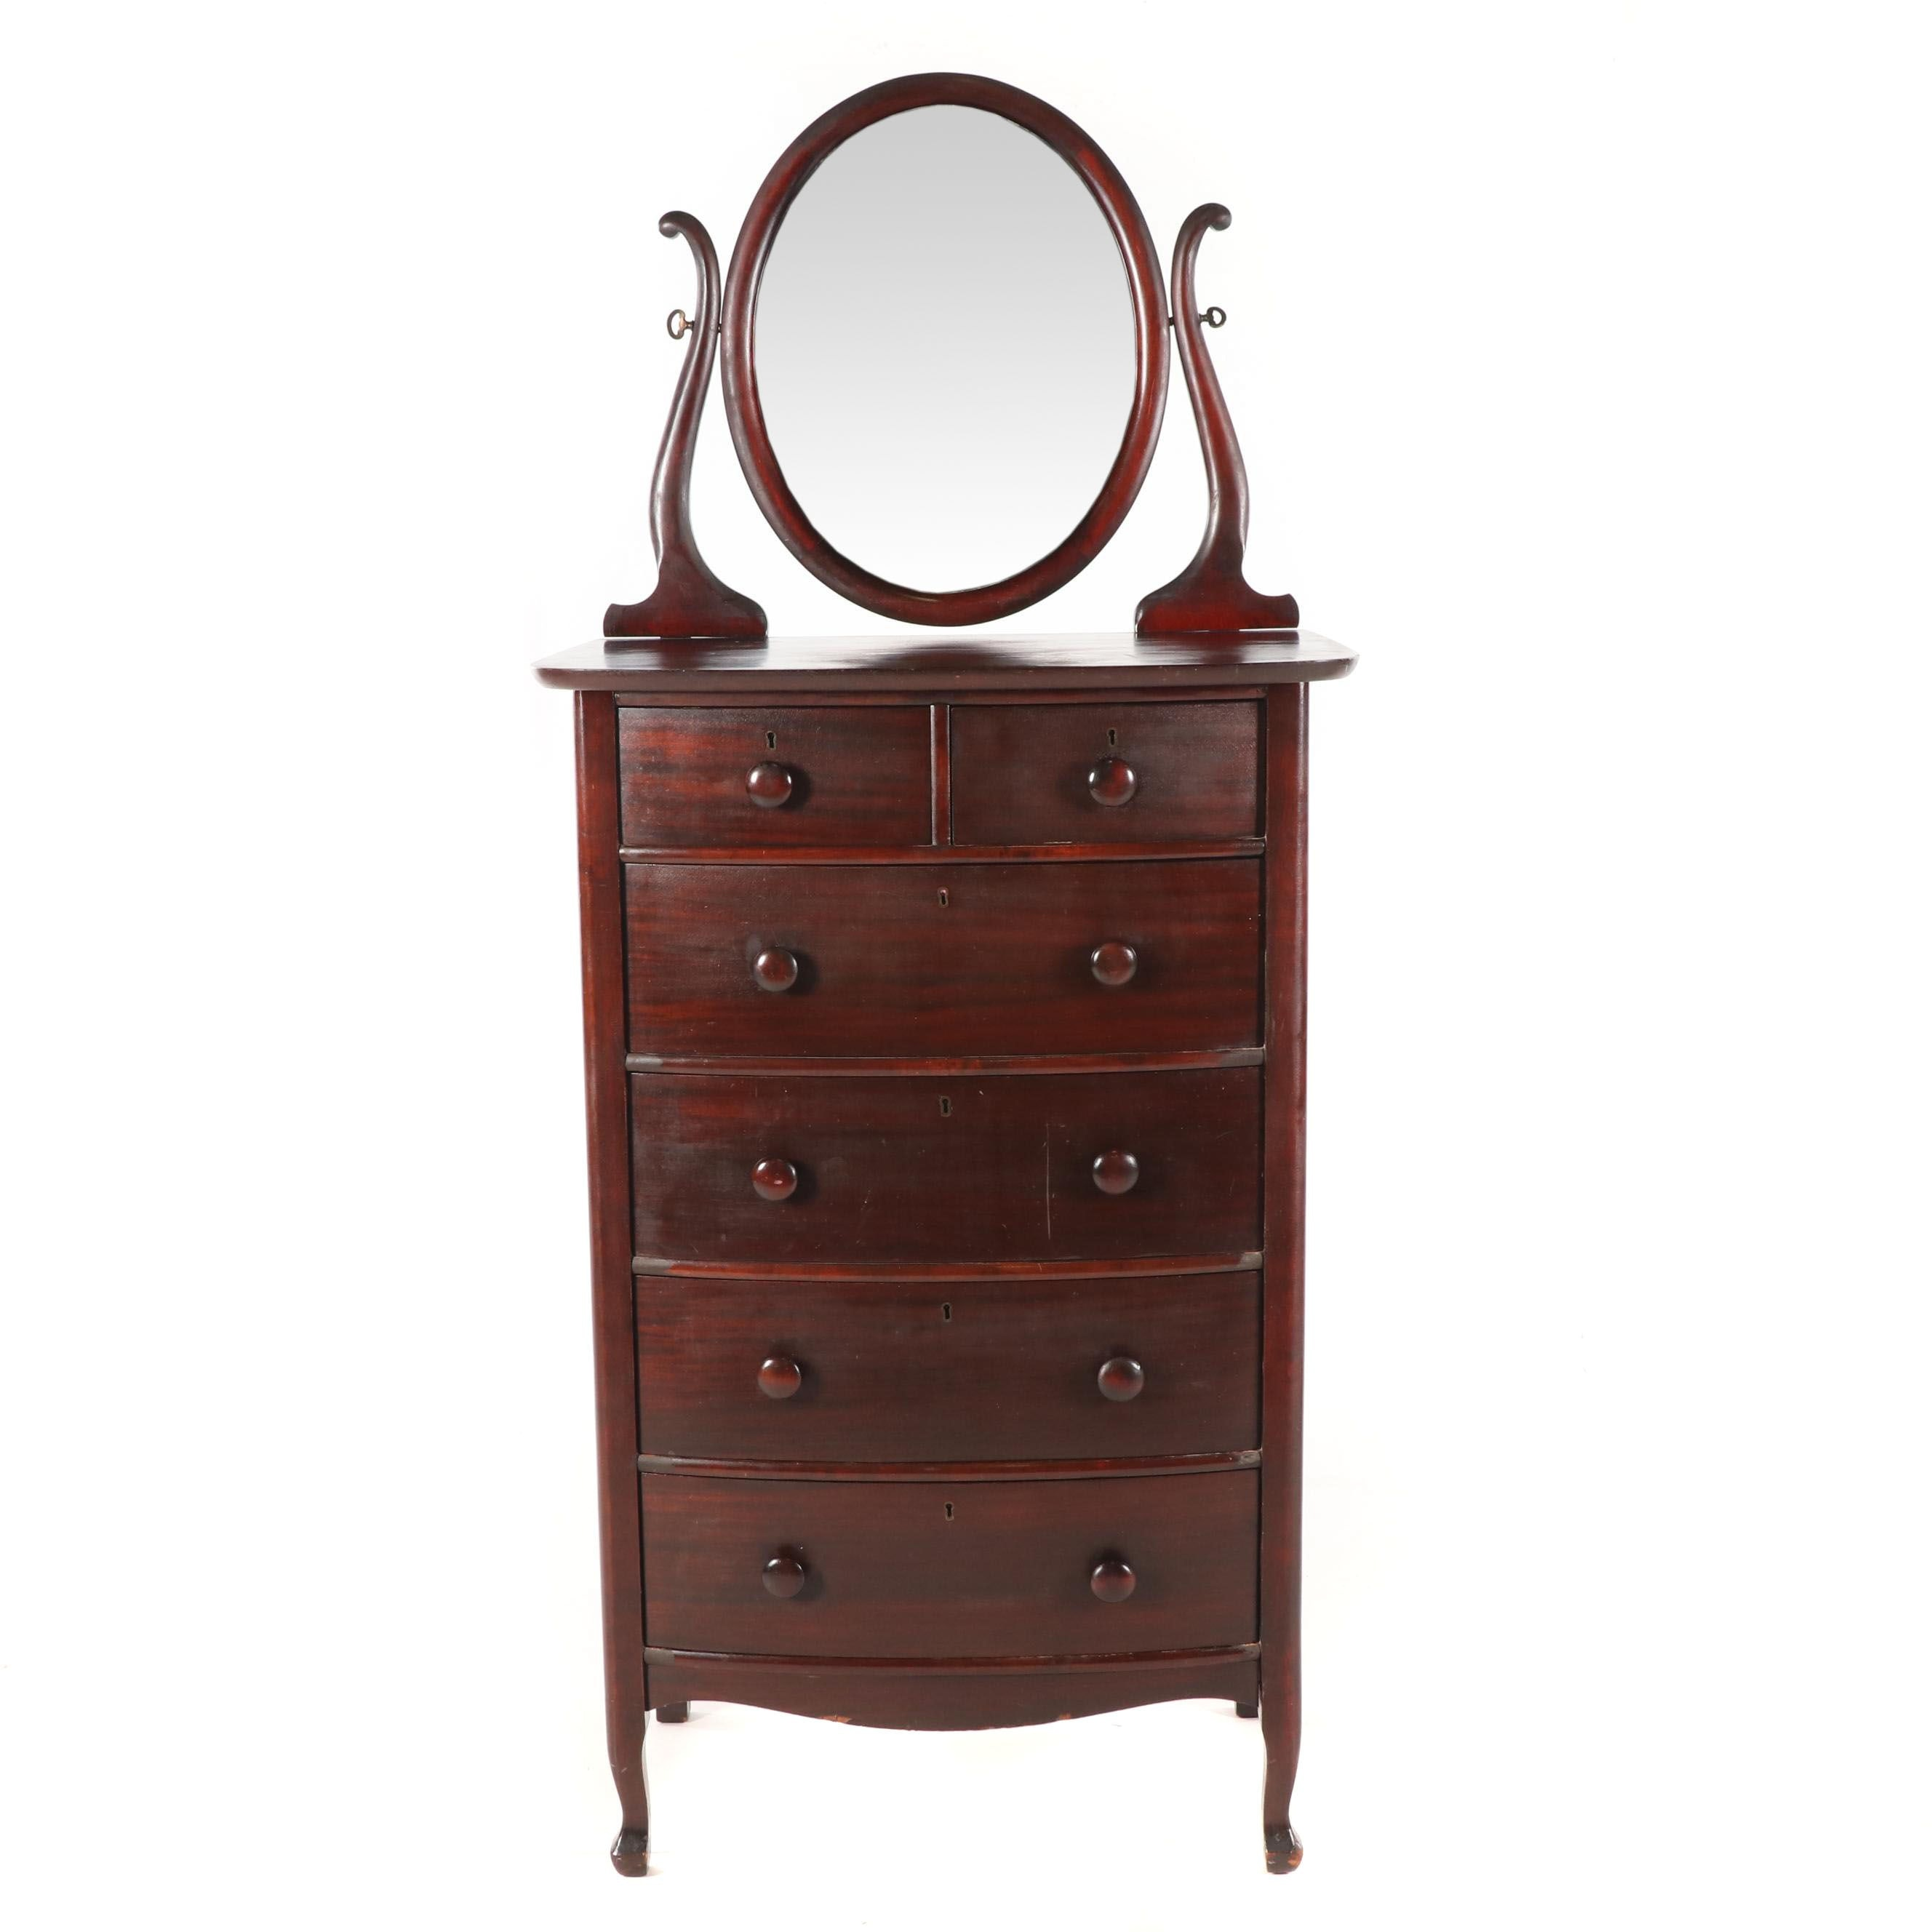 American Mahogany Bow Front Chest with Mirror, Early 20th Century